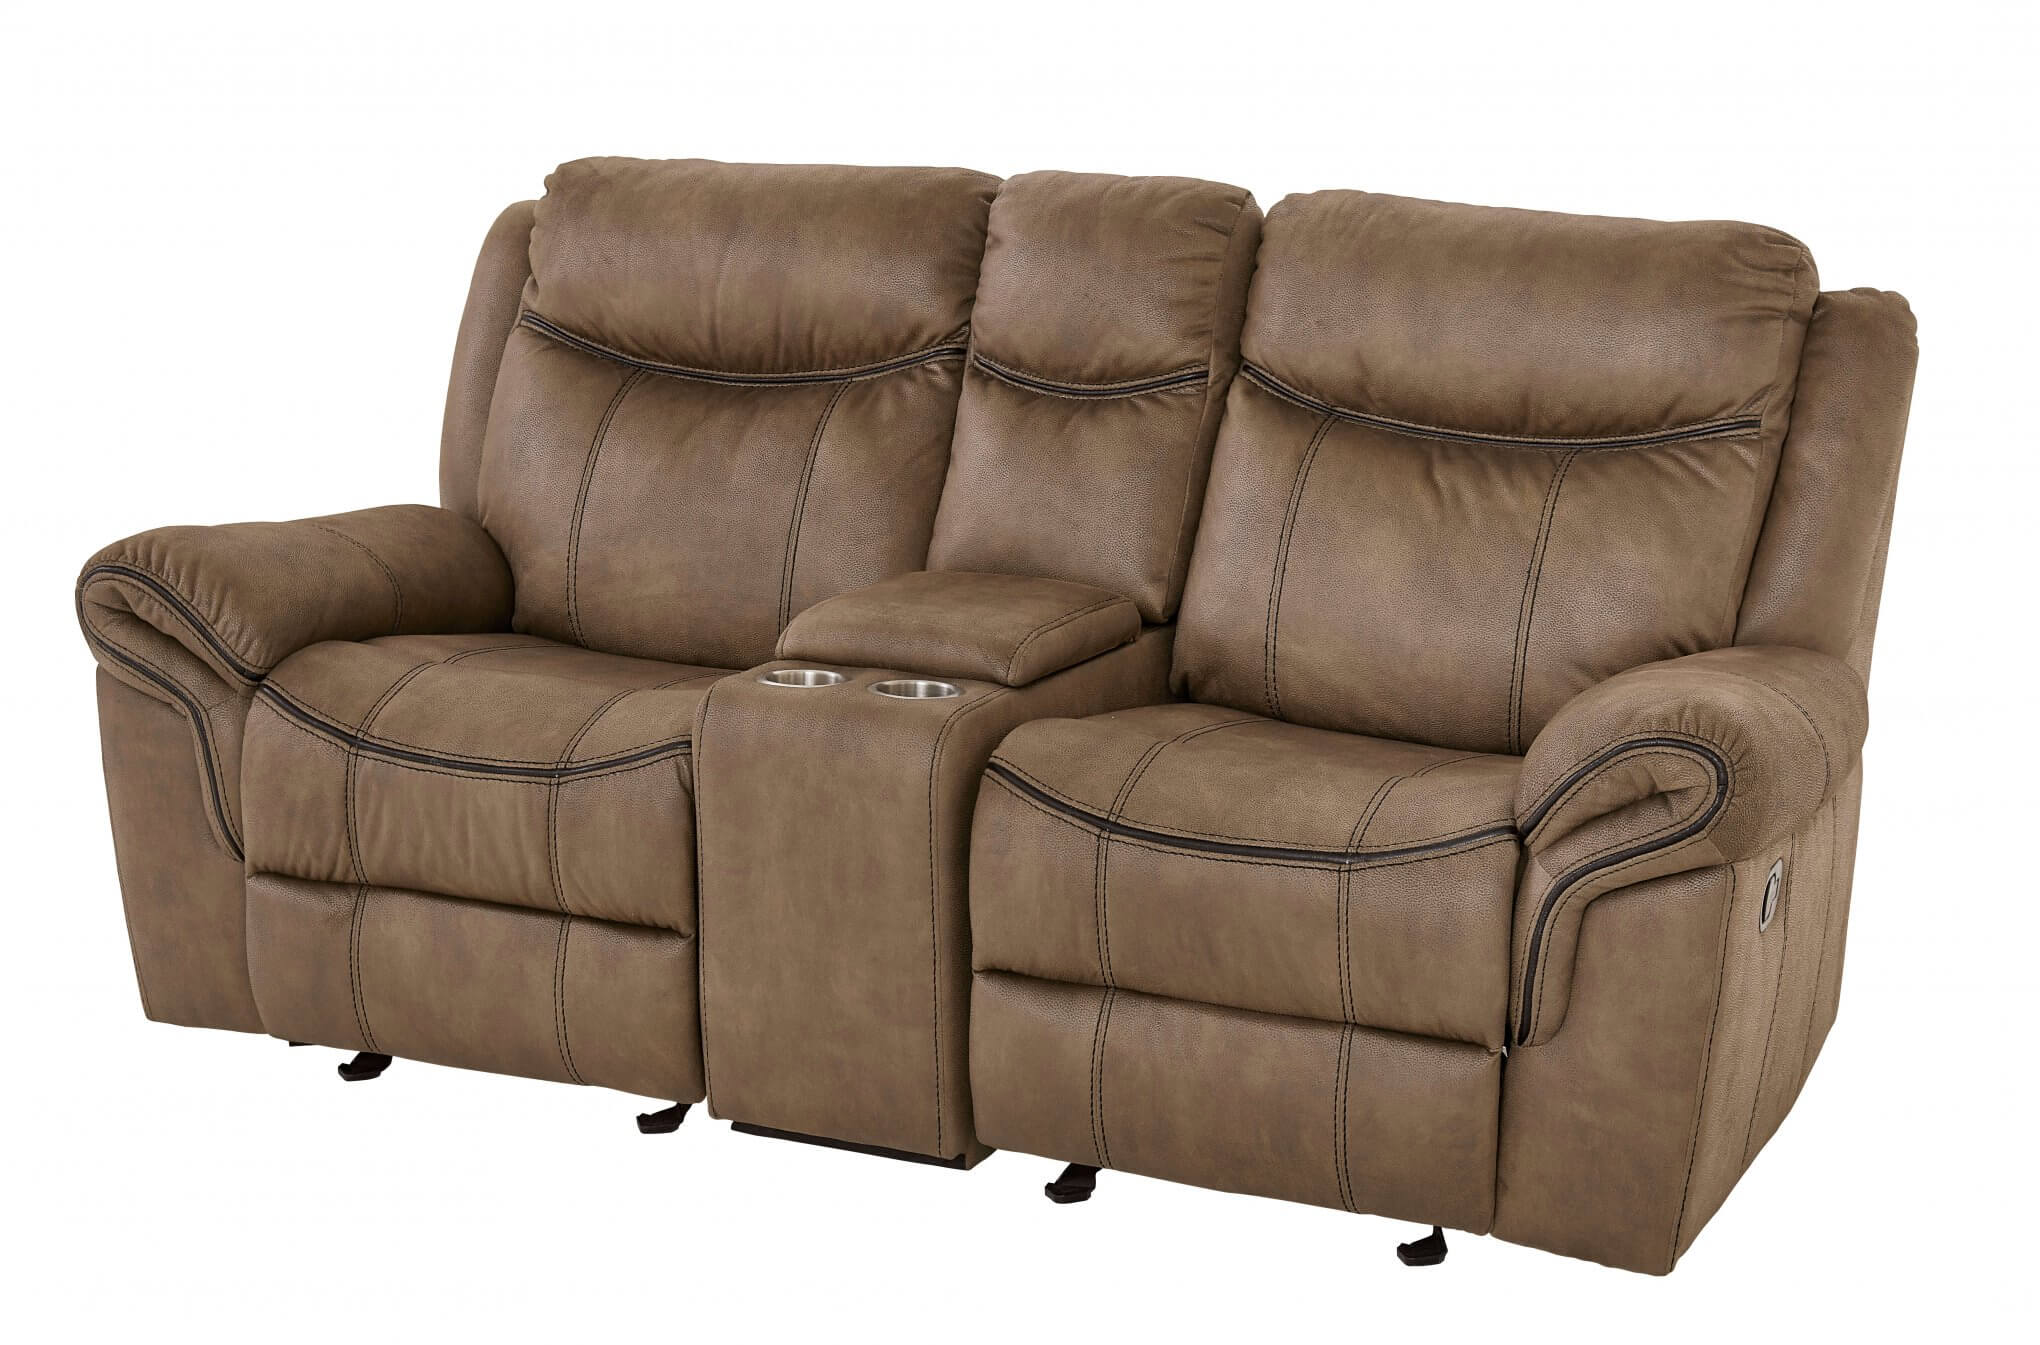 Magnificent 422000 Knoxville Reclining Sofa And Loveseat Cjindustries Chair Design For Home Cjindustriesco